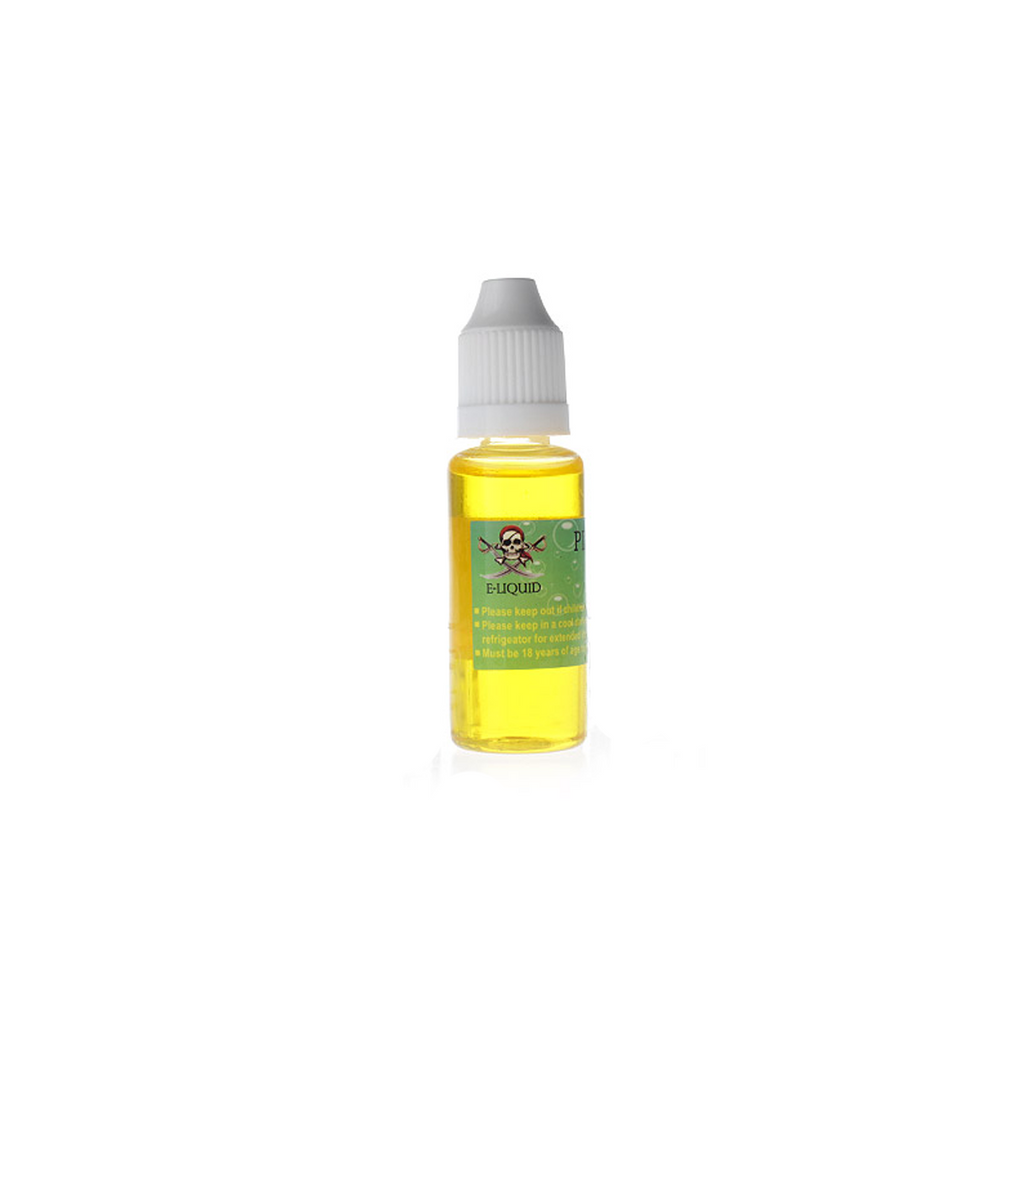 E-liquid Strawberry Vape Juice 20ml-Purplevibe